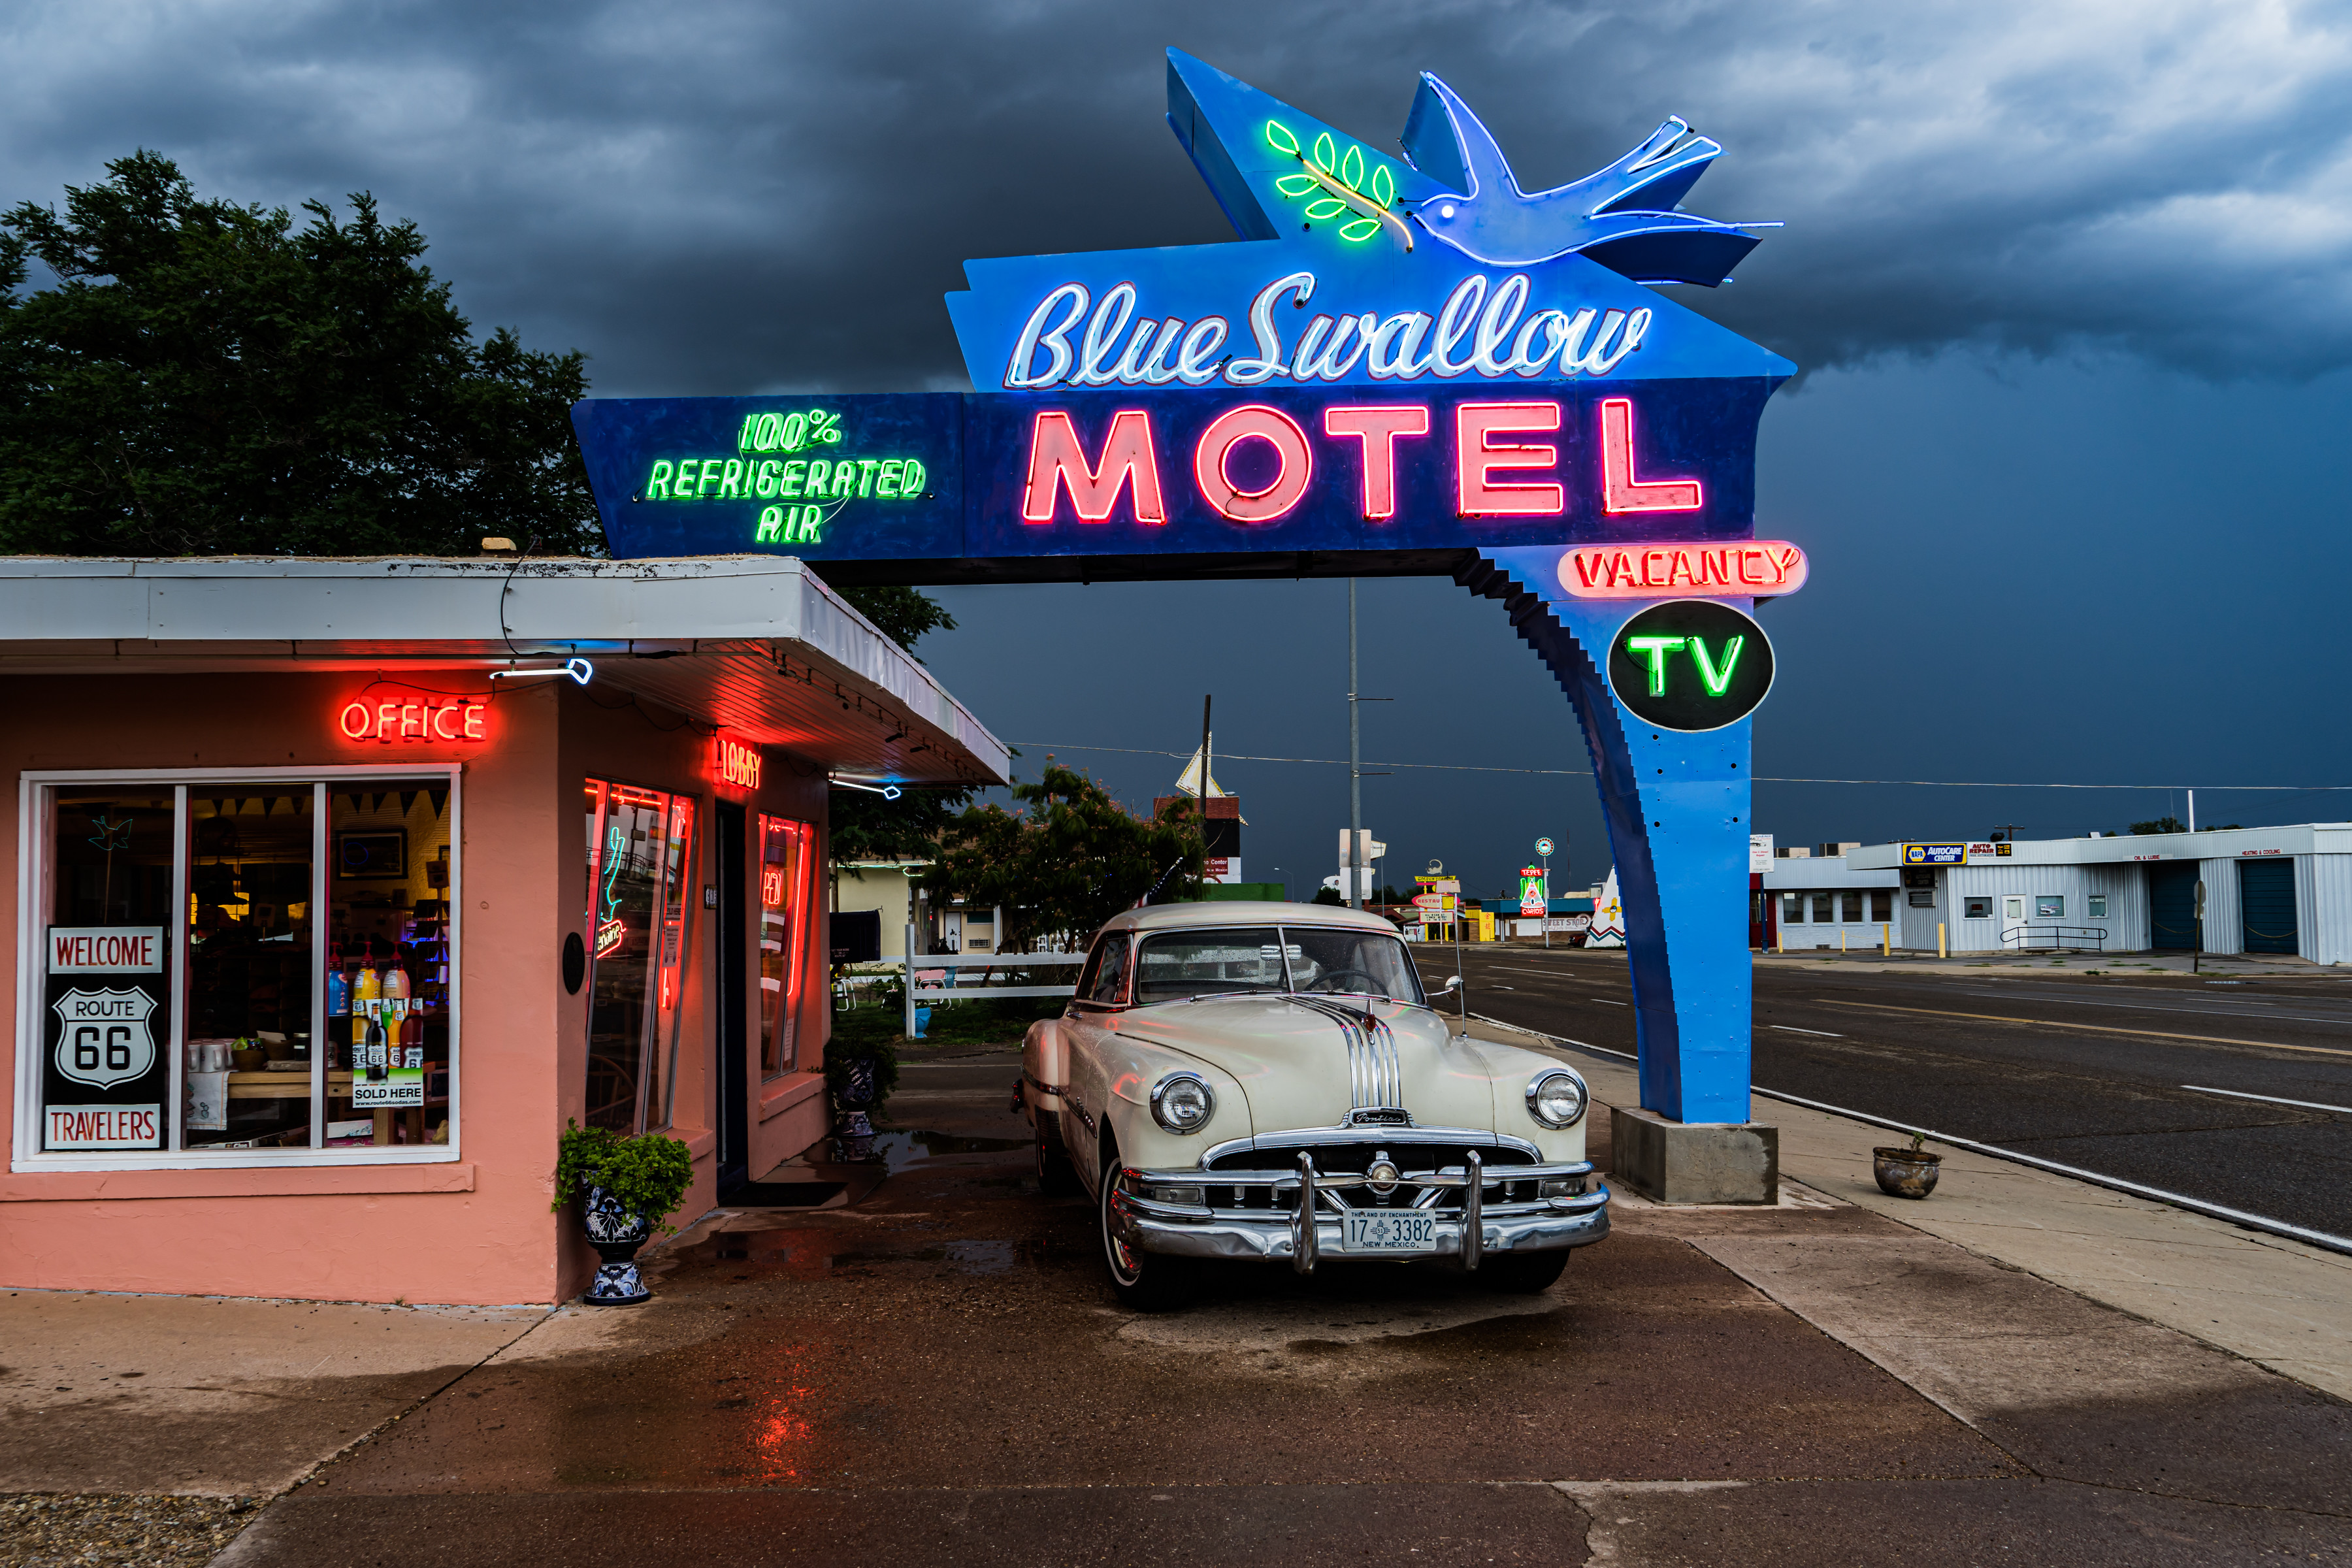 Blue Swallow Motel - 815 East Route 66, Tucumcari, New Mexico U.S.A. - August 20, 2017